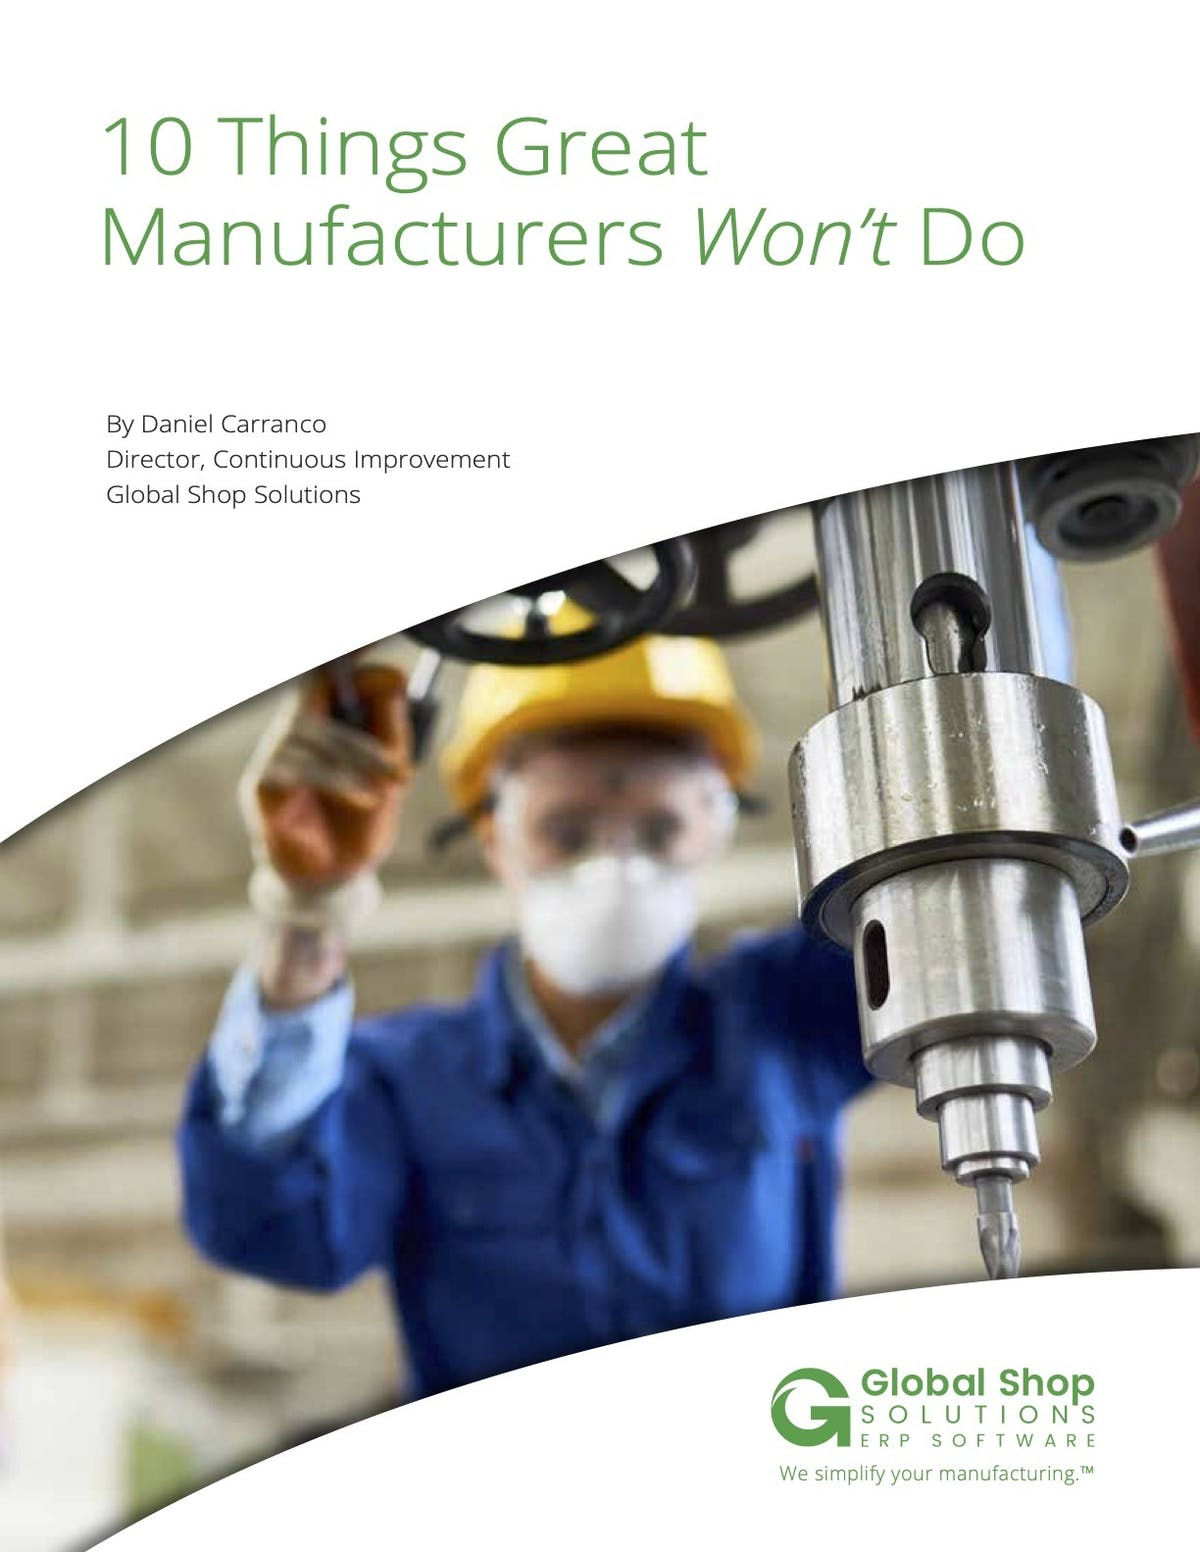 Global Shop Solutions White Paper - 10 Things Great Manufacturers Won't Do